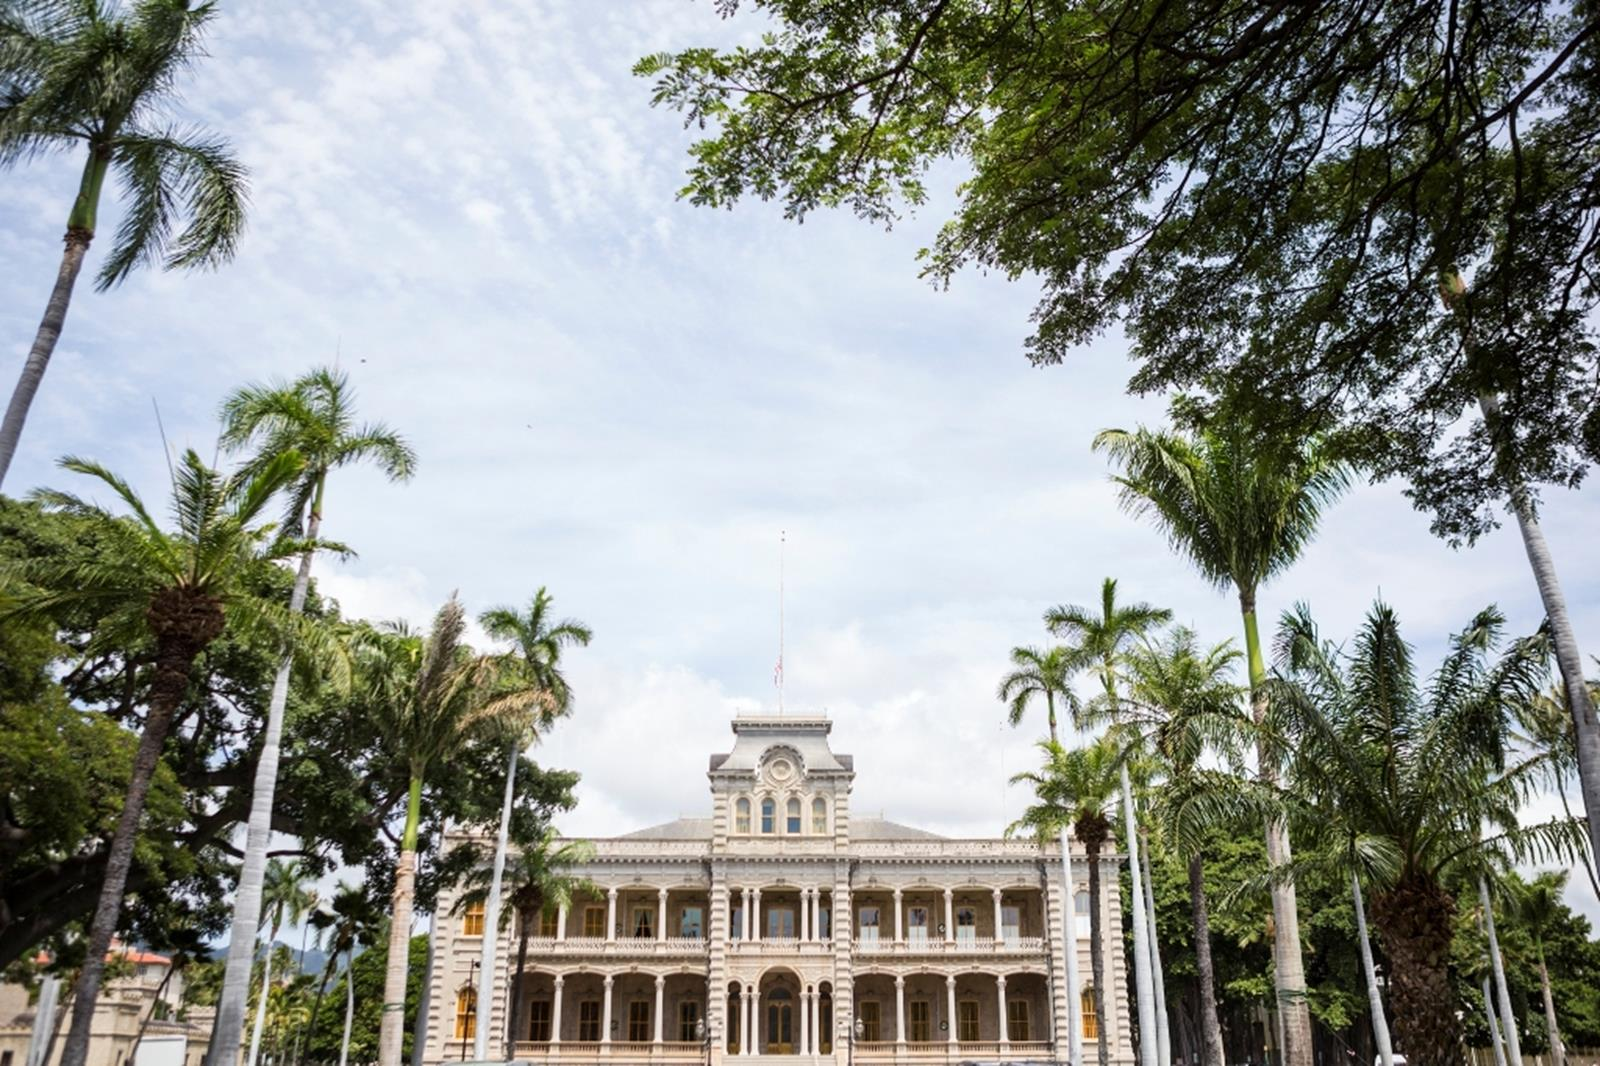 Iolani Palace. Credit: Hawaii Tourism Authority (HTA)/Tor Johnson Island.